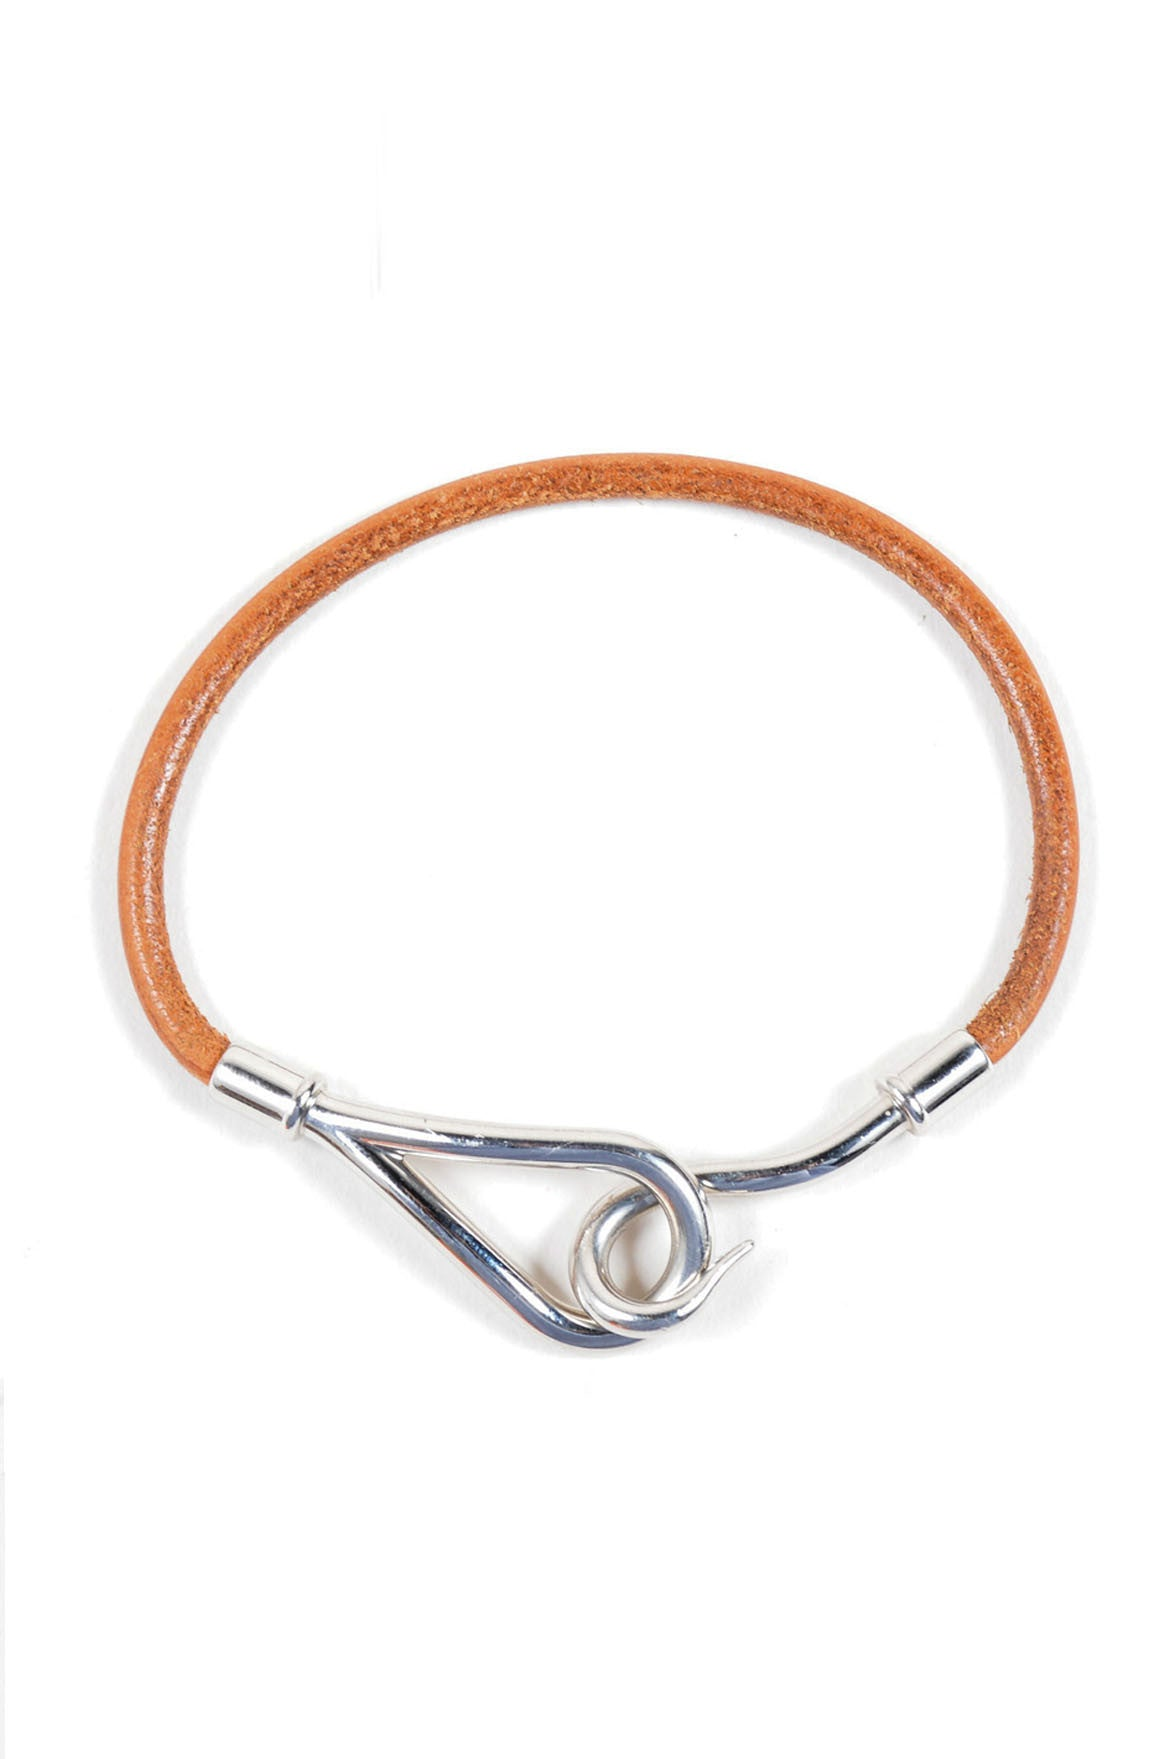 Brown Leather and Silver Toned Hermes Hooked Wrap Bracelet Frontview